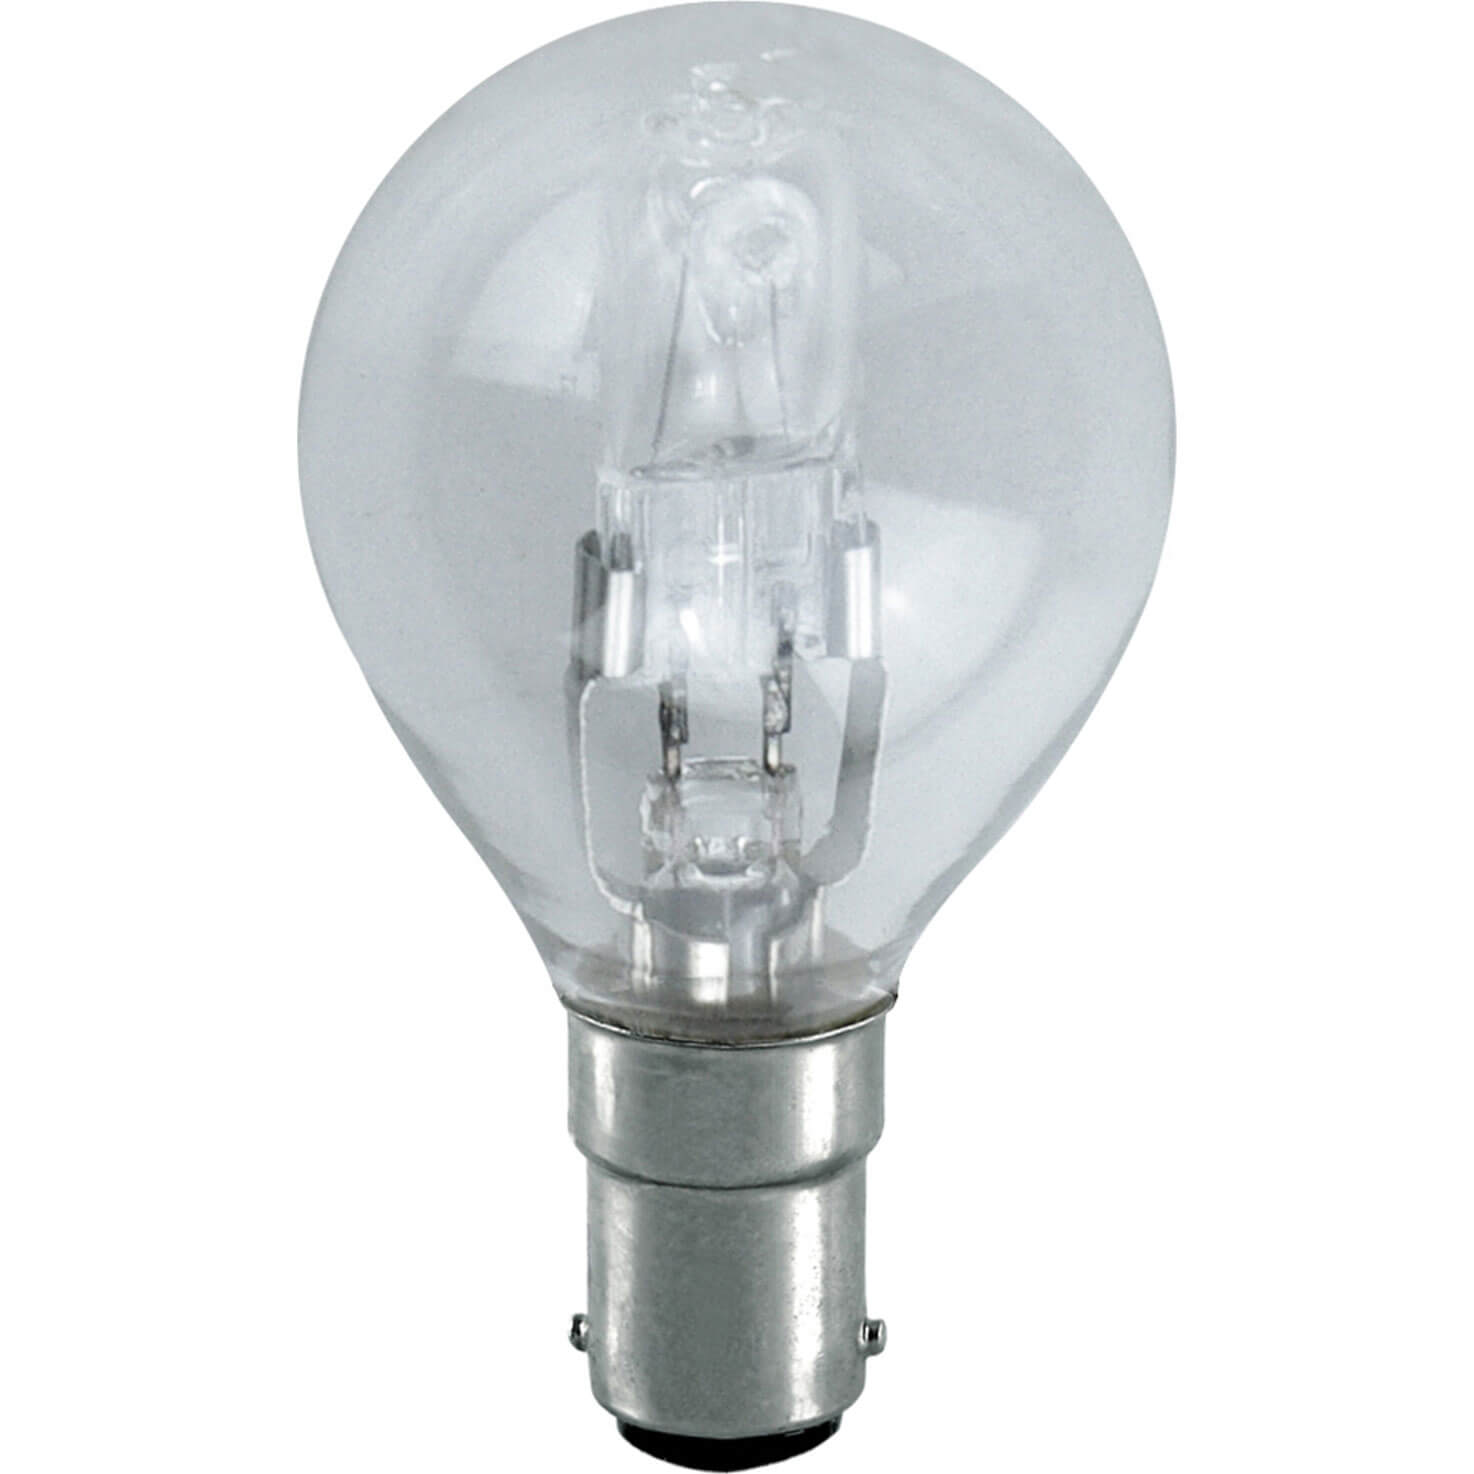 Image of Eveready Energy Save G45 Halogen Golf Bulb SBC / B15 Small Bayonet Cap 42w